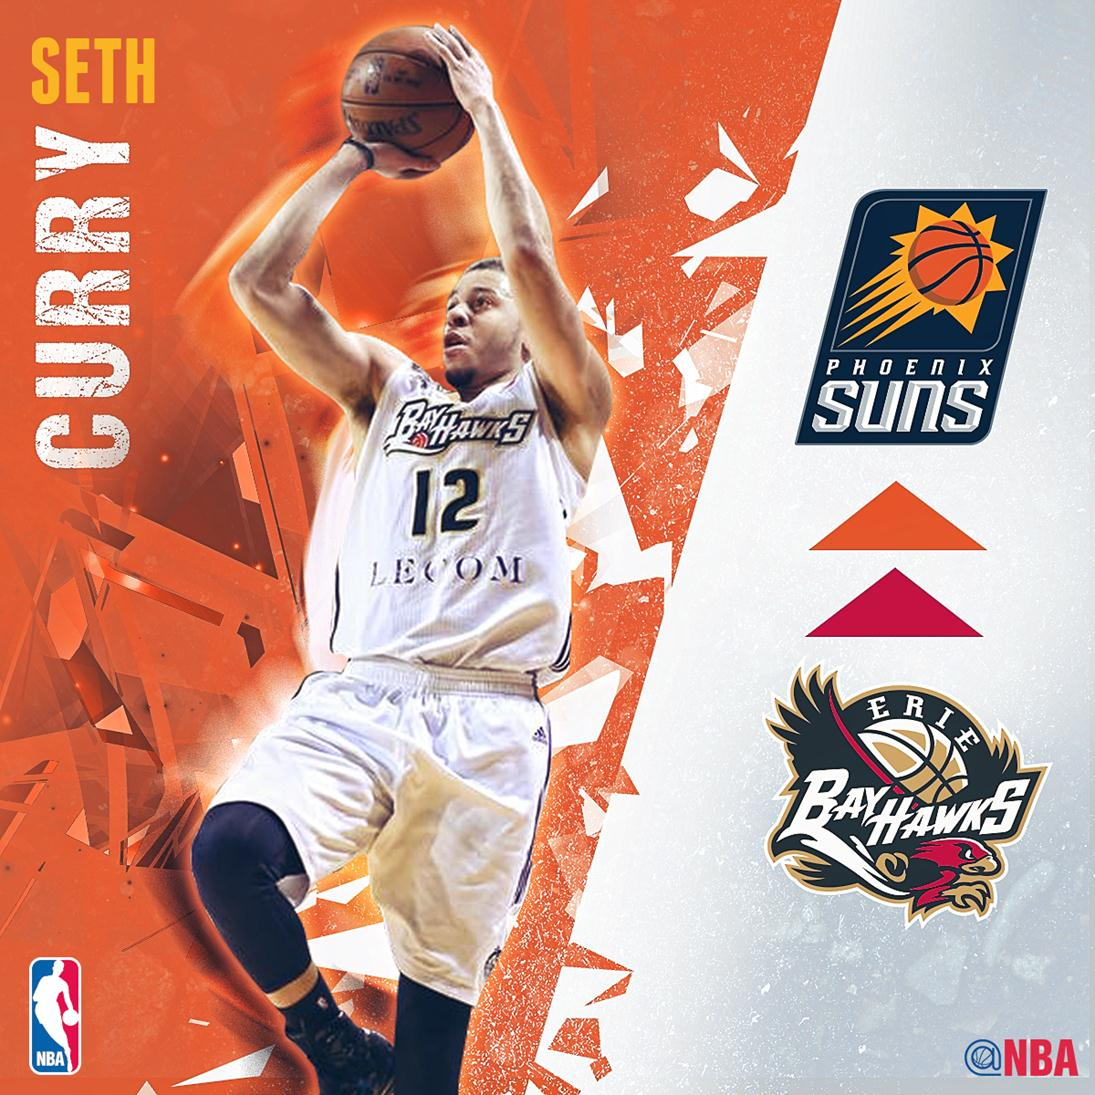 1-seth-curry-graphic